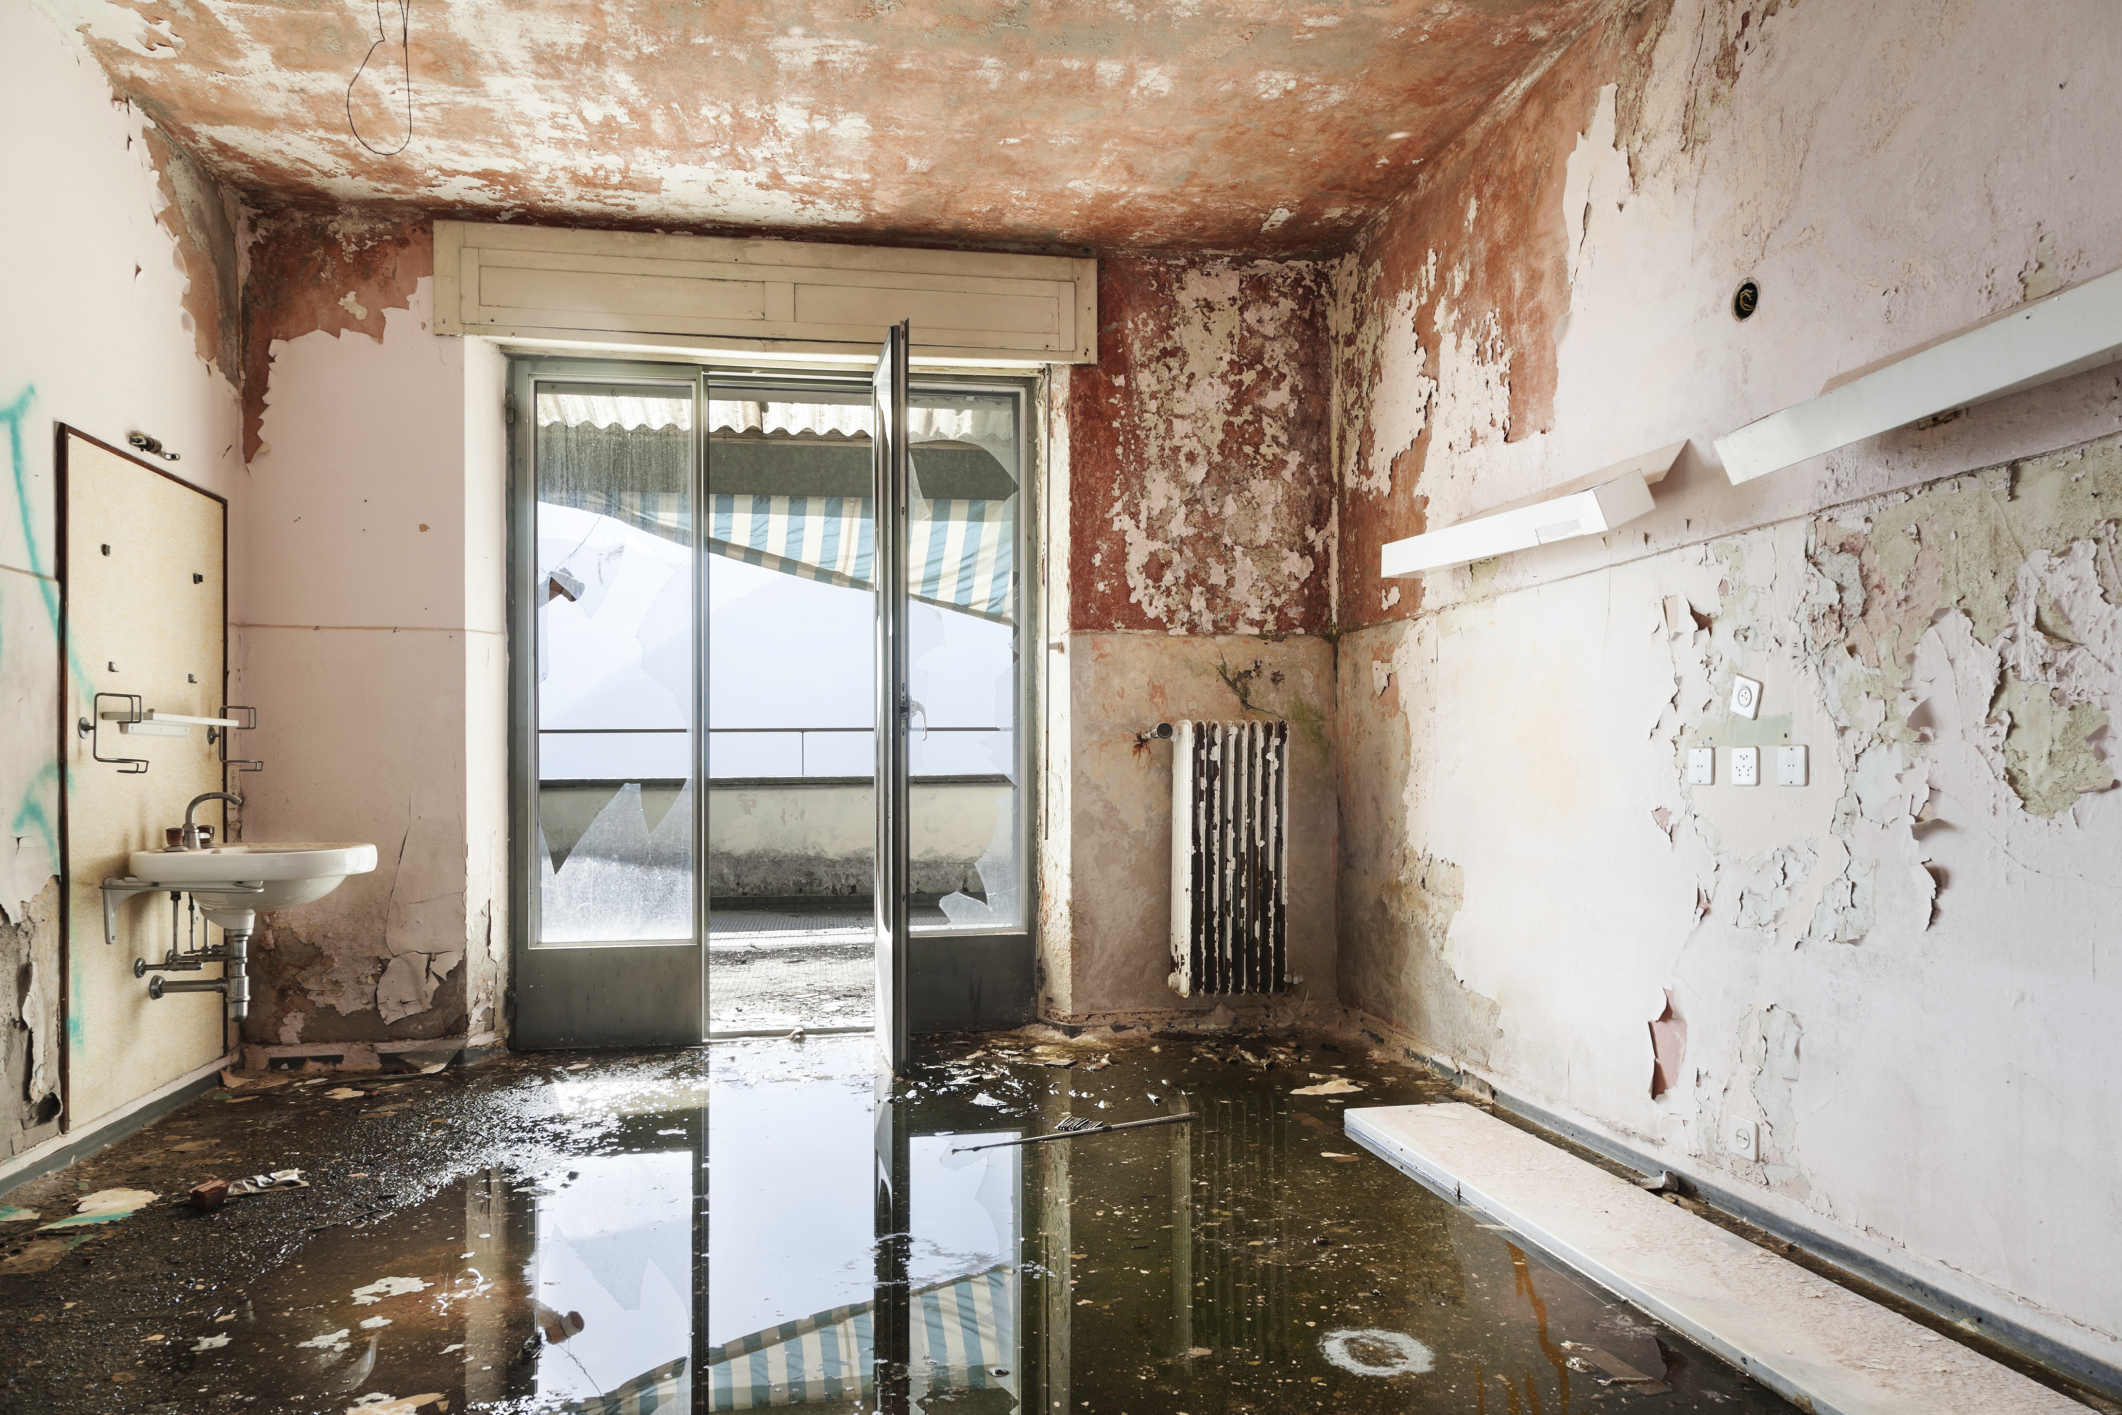 Water Damage Technician Job Description Career Trend